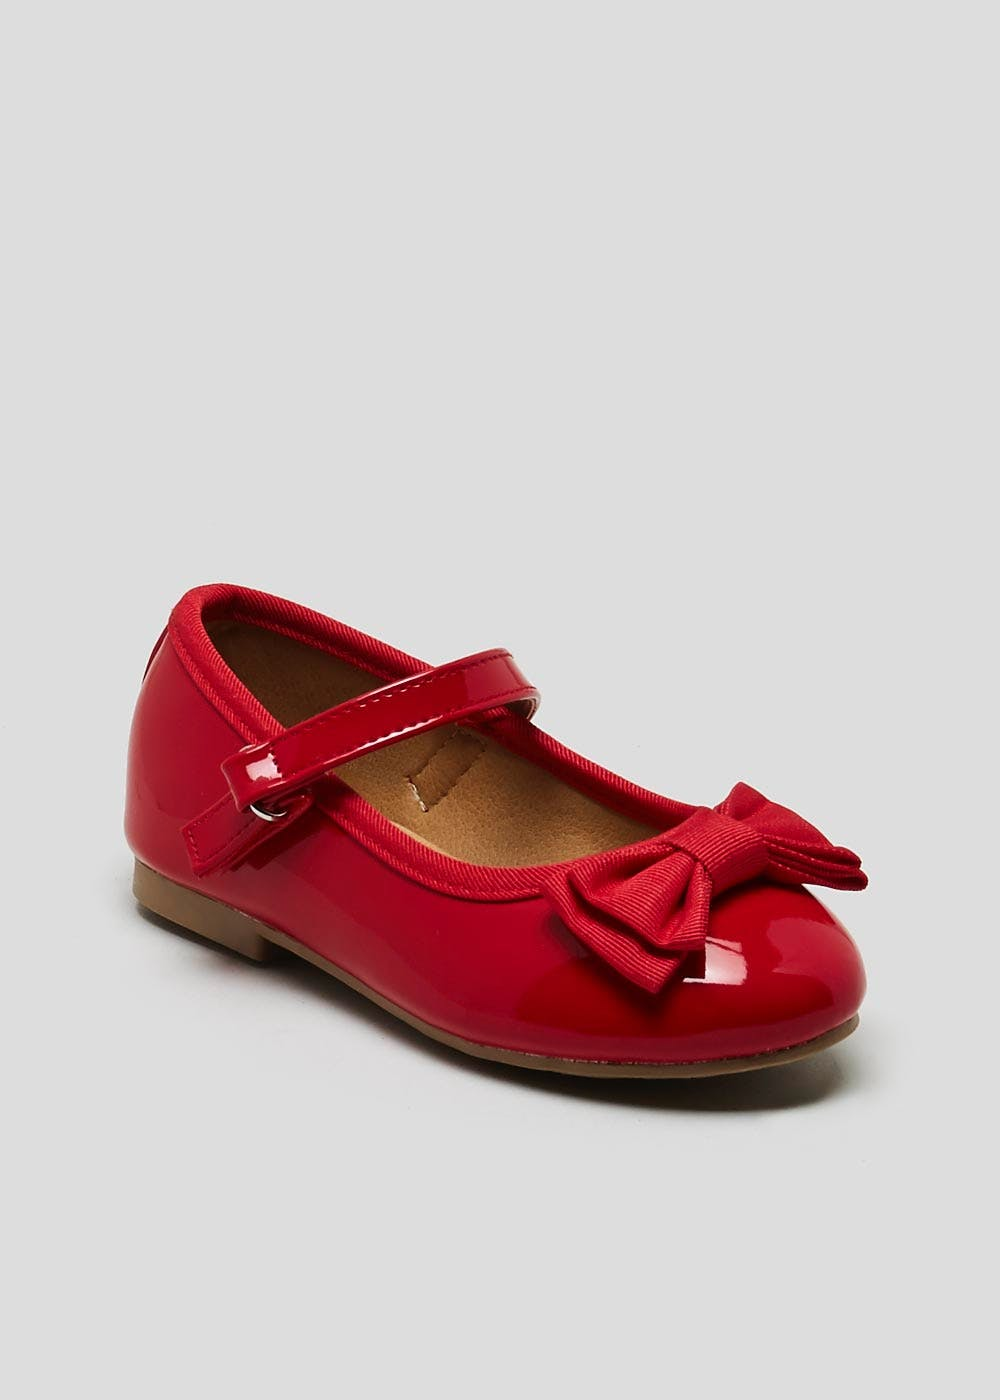 173b44700366 Girls Patent Bow Ballet Shoes (Younger 4-12) – Red – Matalan